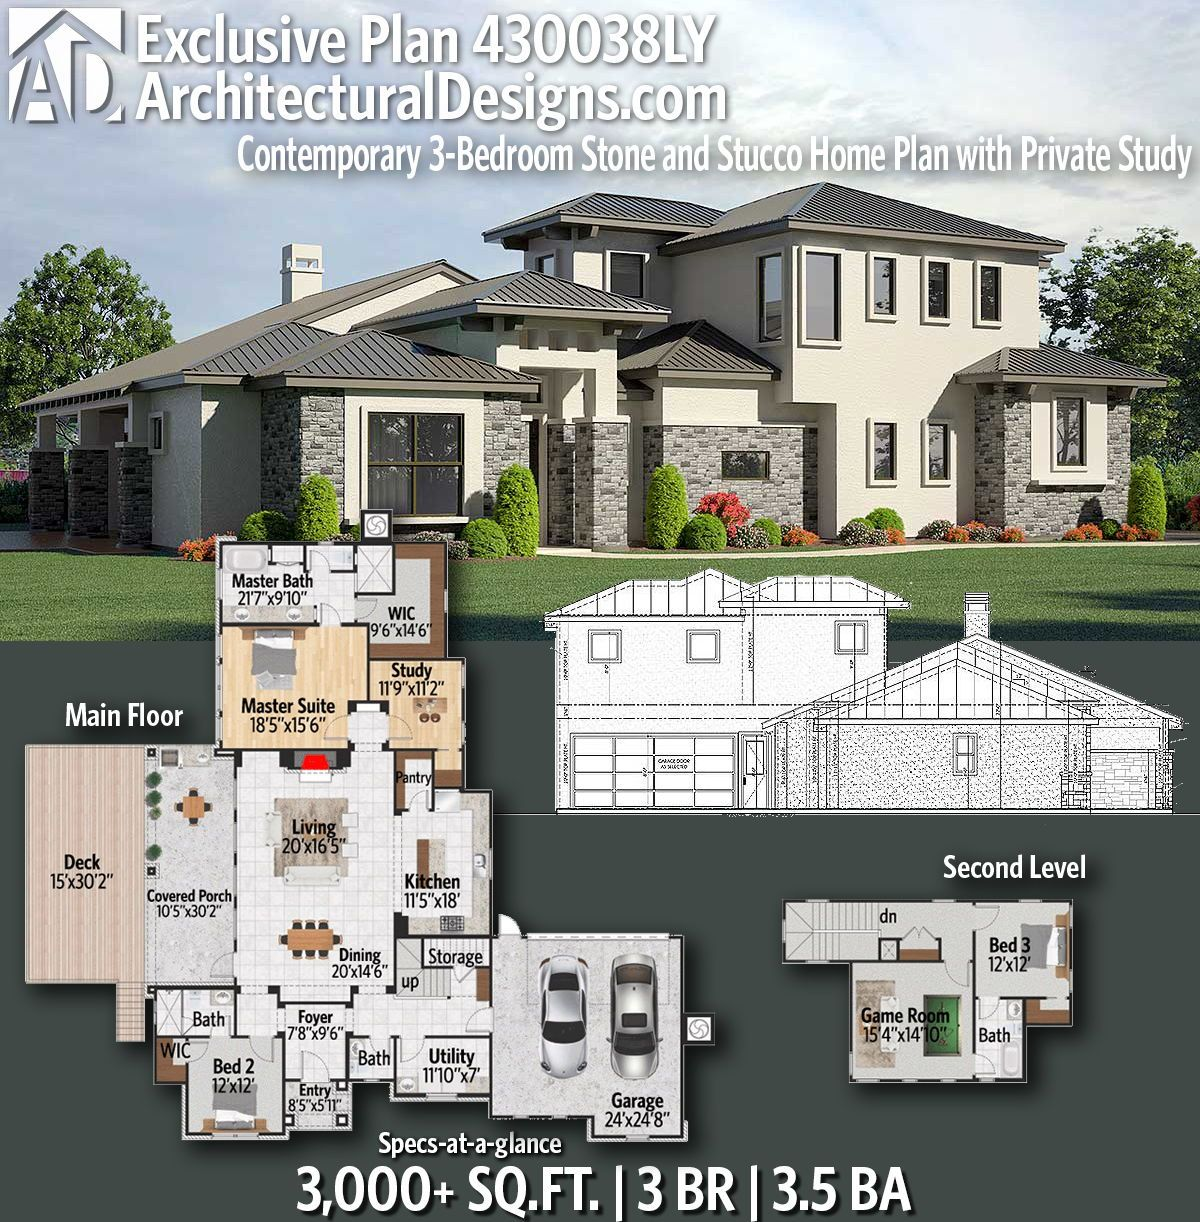 Plan 430038ly Contemporary 3 Bedroom Stone And Stucco Home Plan With Private Study Two Story House Design House Plans House Blueprints